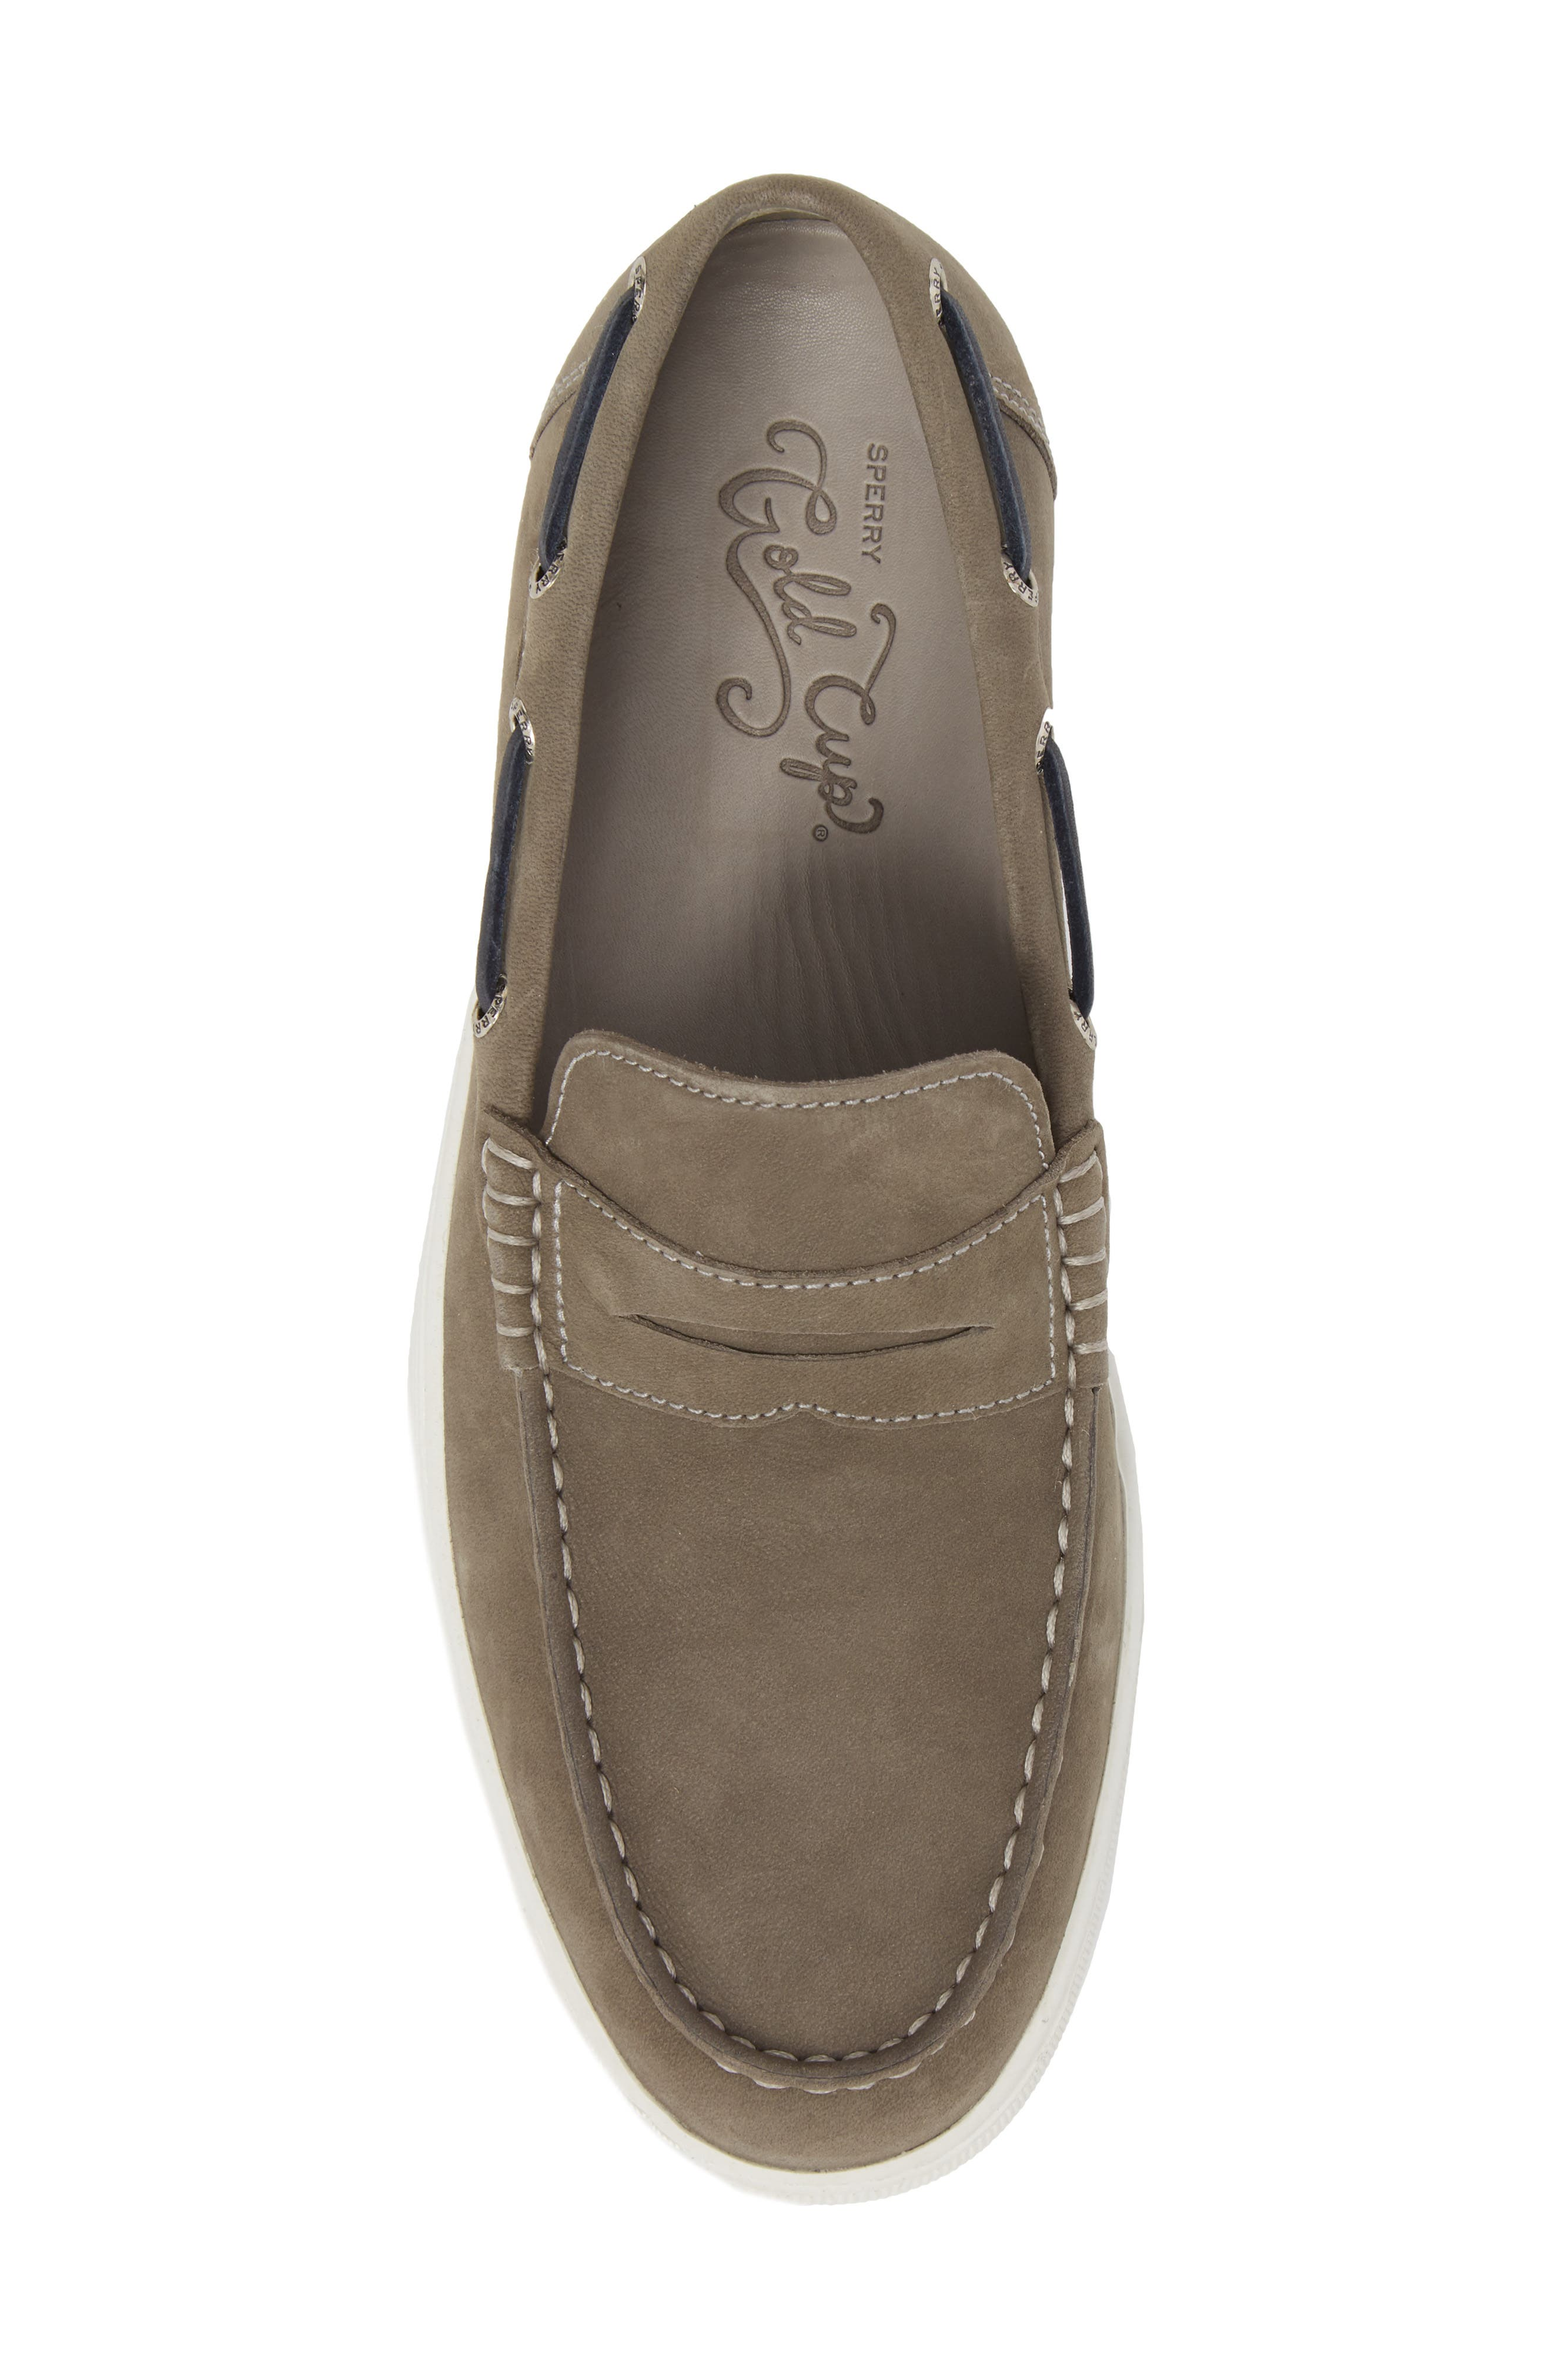 Gold Cup Penny Loafer,                             Alternate thumbnail 5, color,                             020